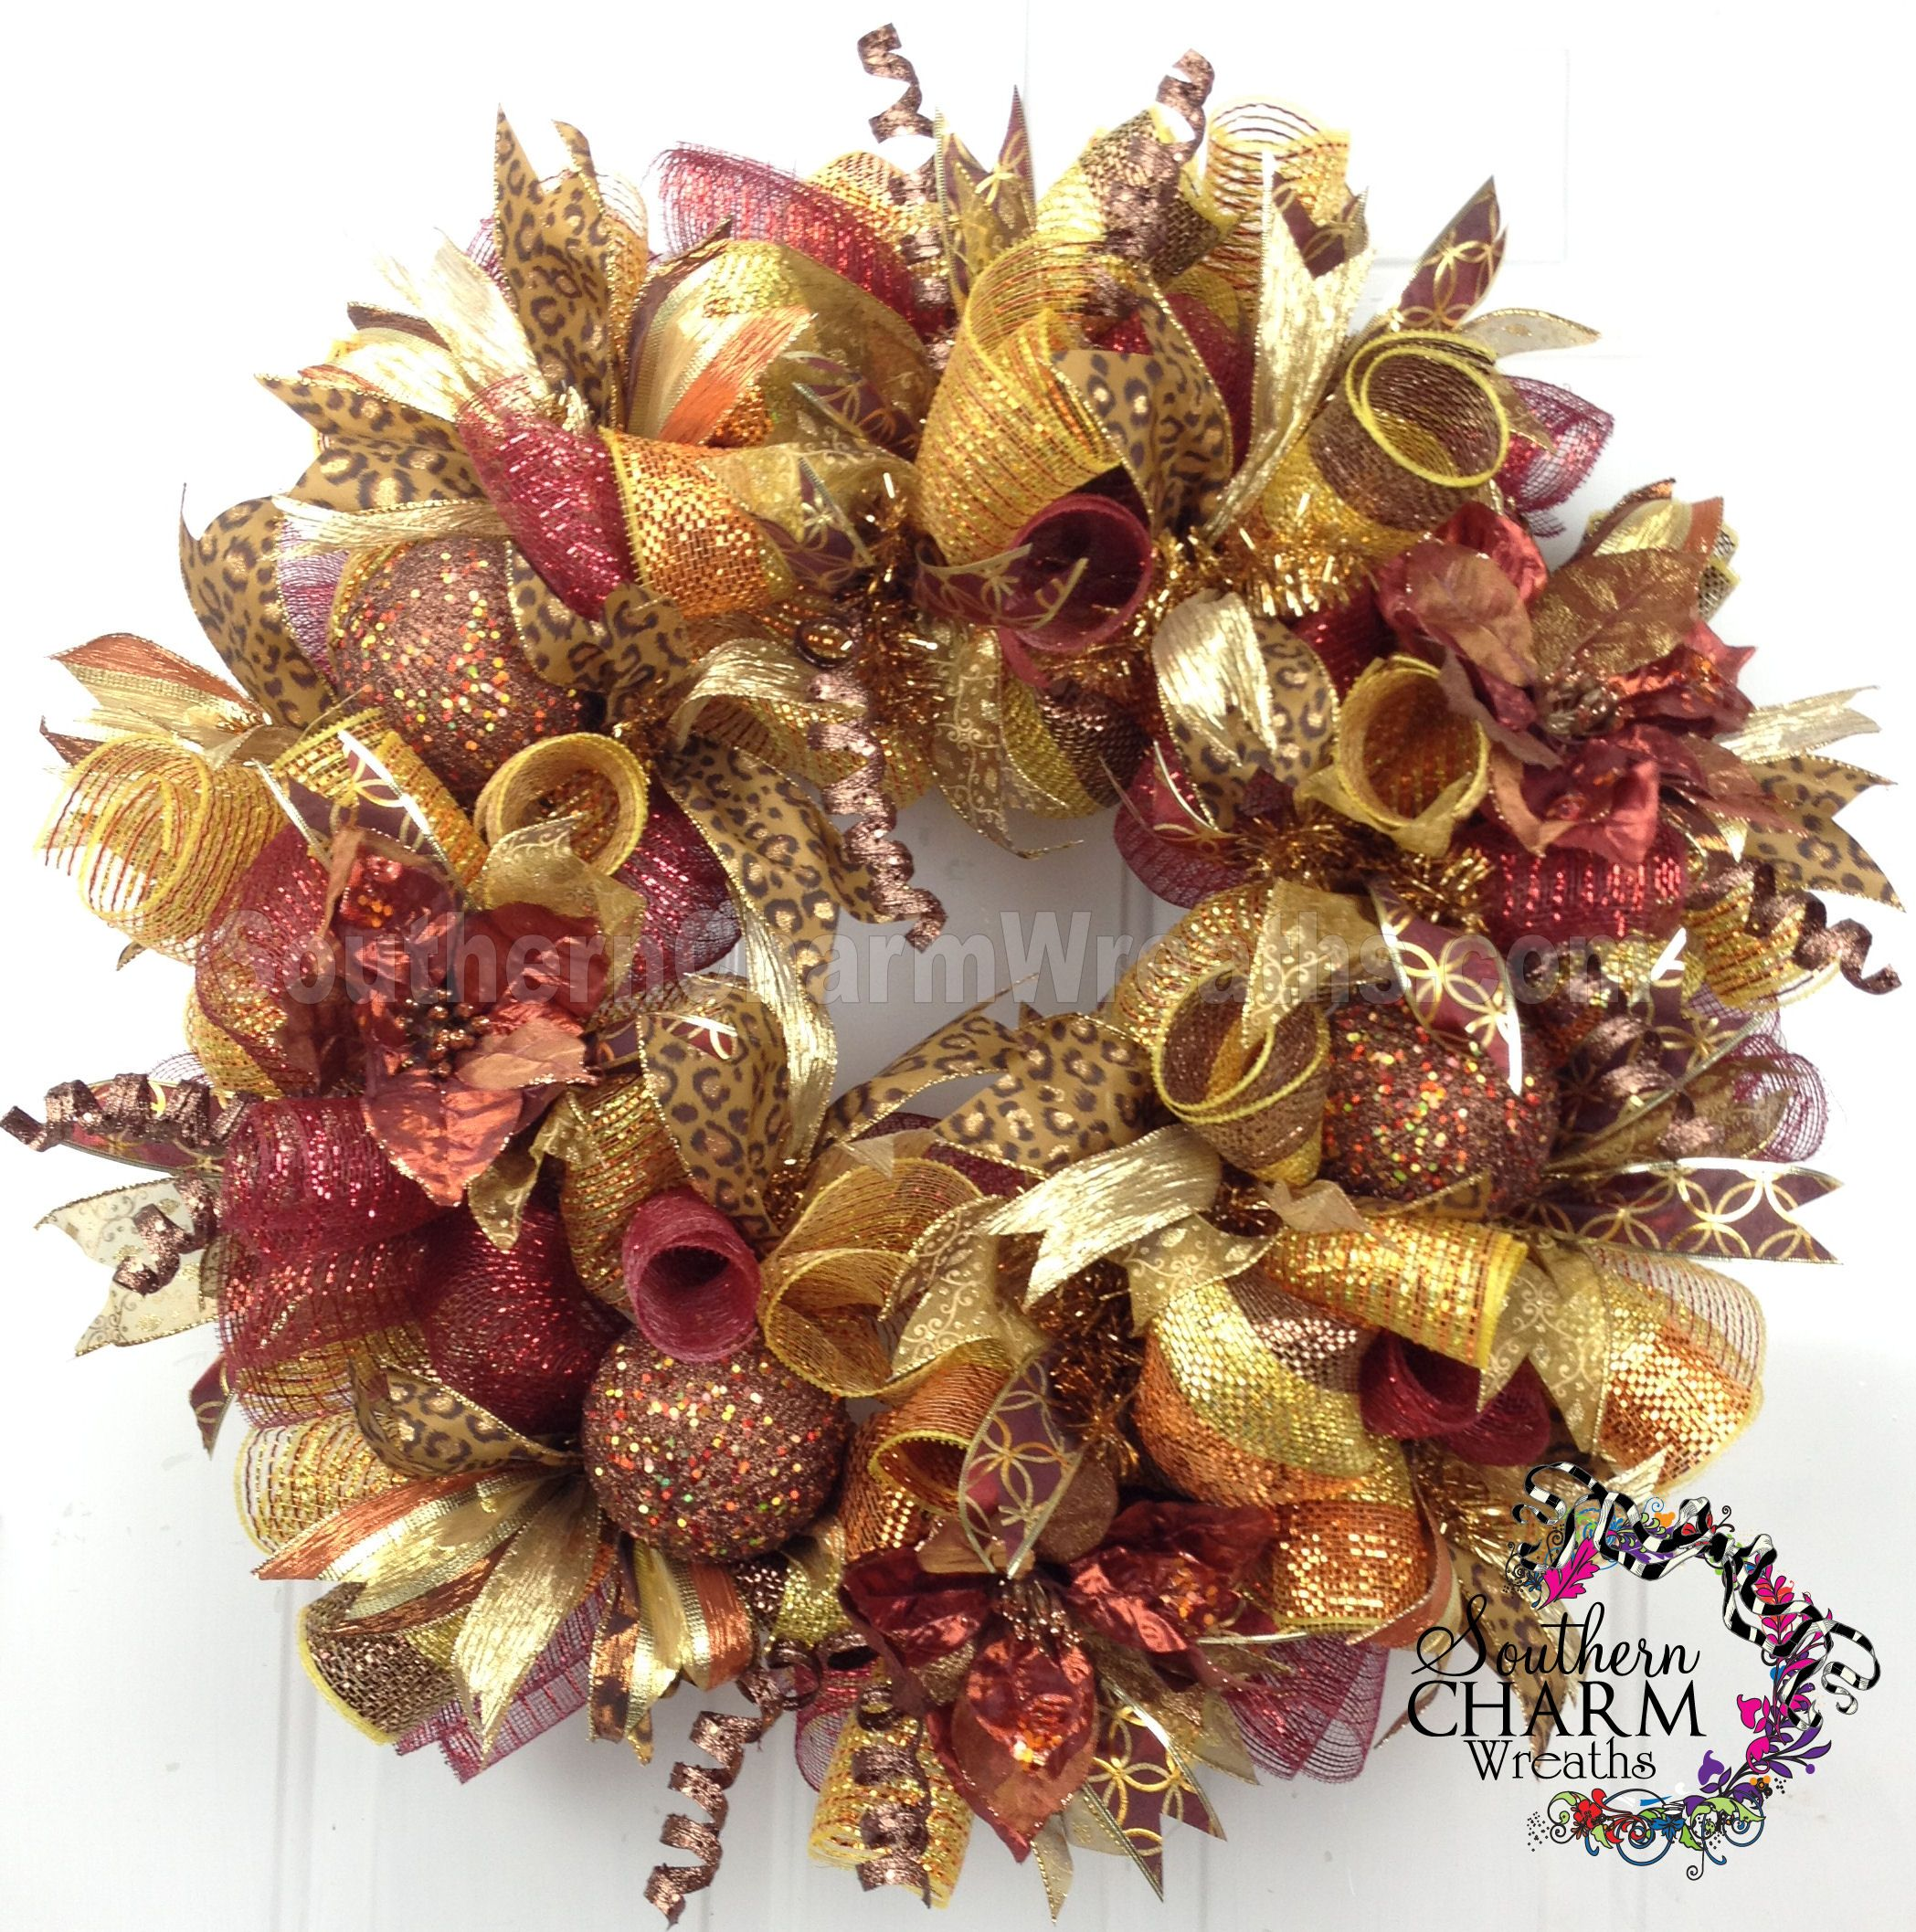 Deco Mesh Christmas Wreath For Door Or Wall Bronze Gold Copper Cheetah Glam  By